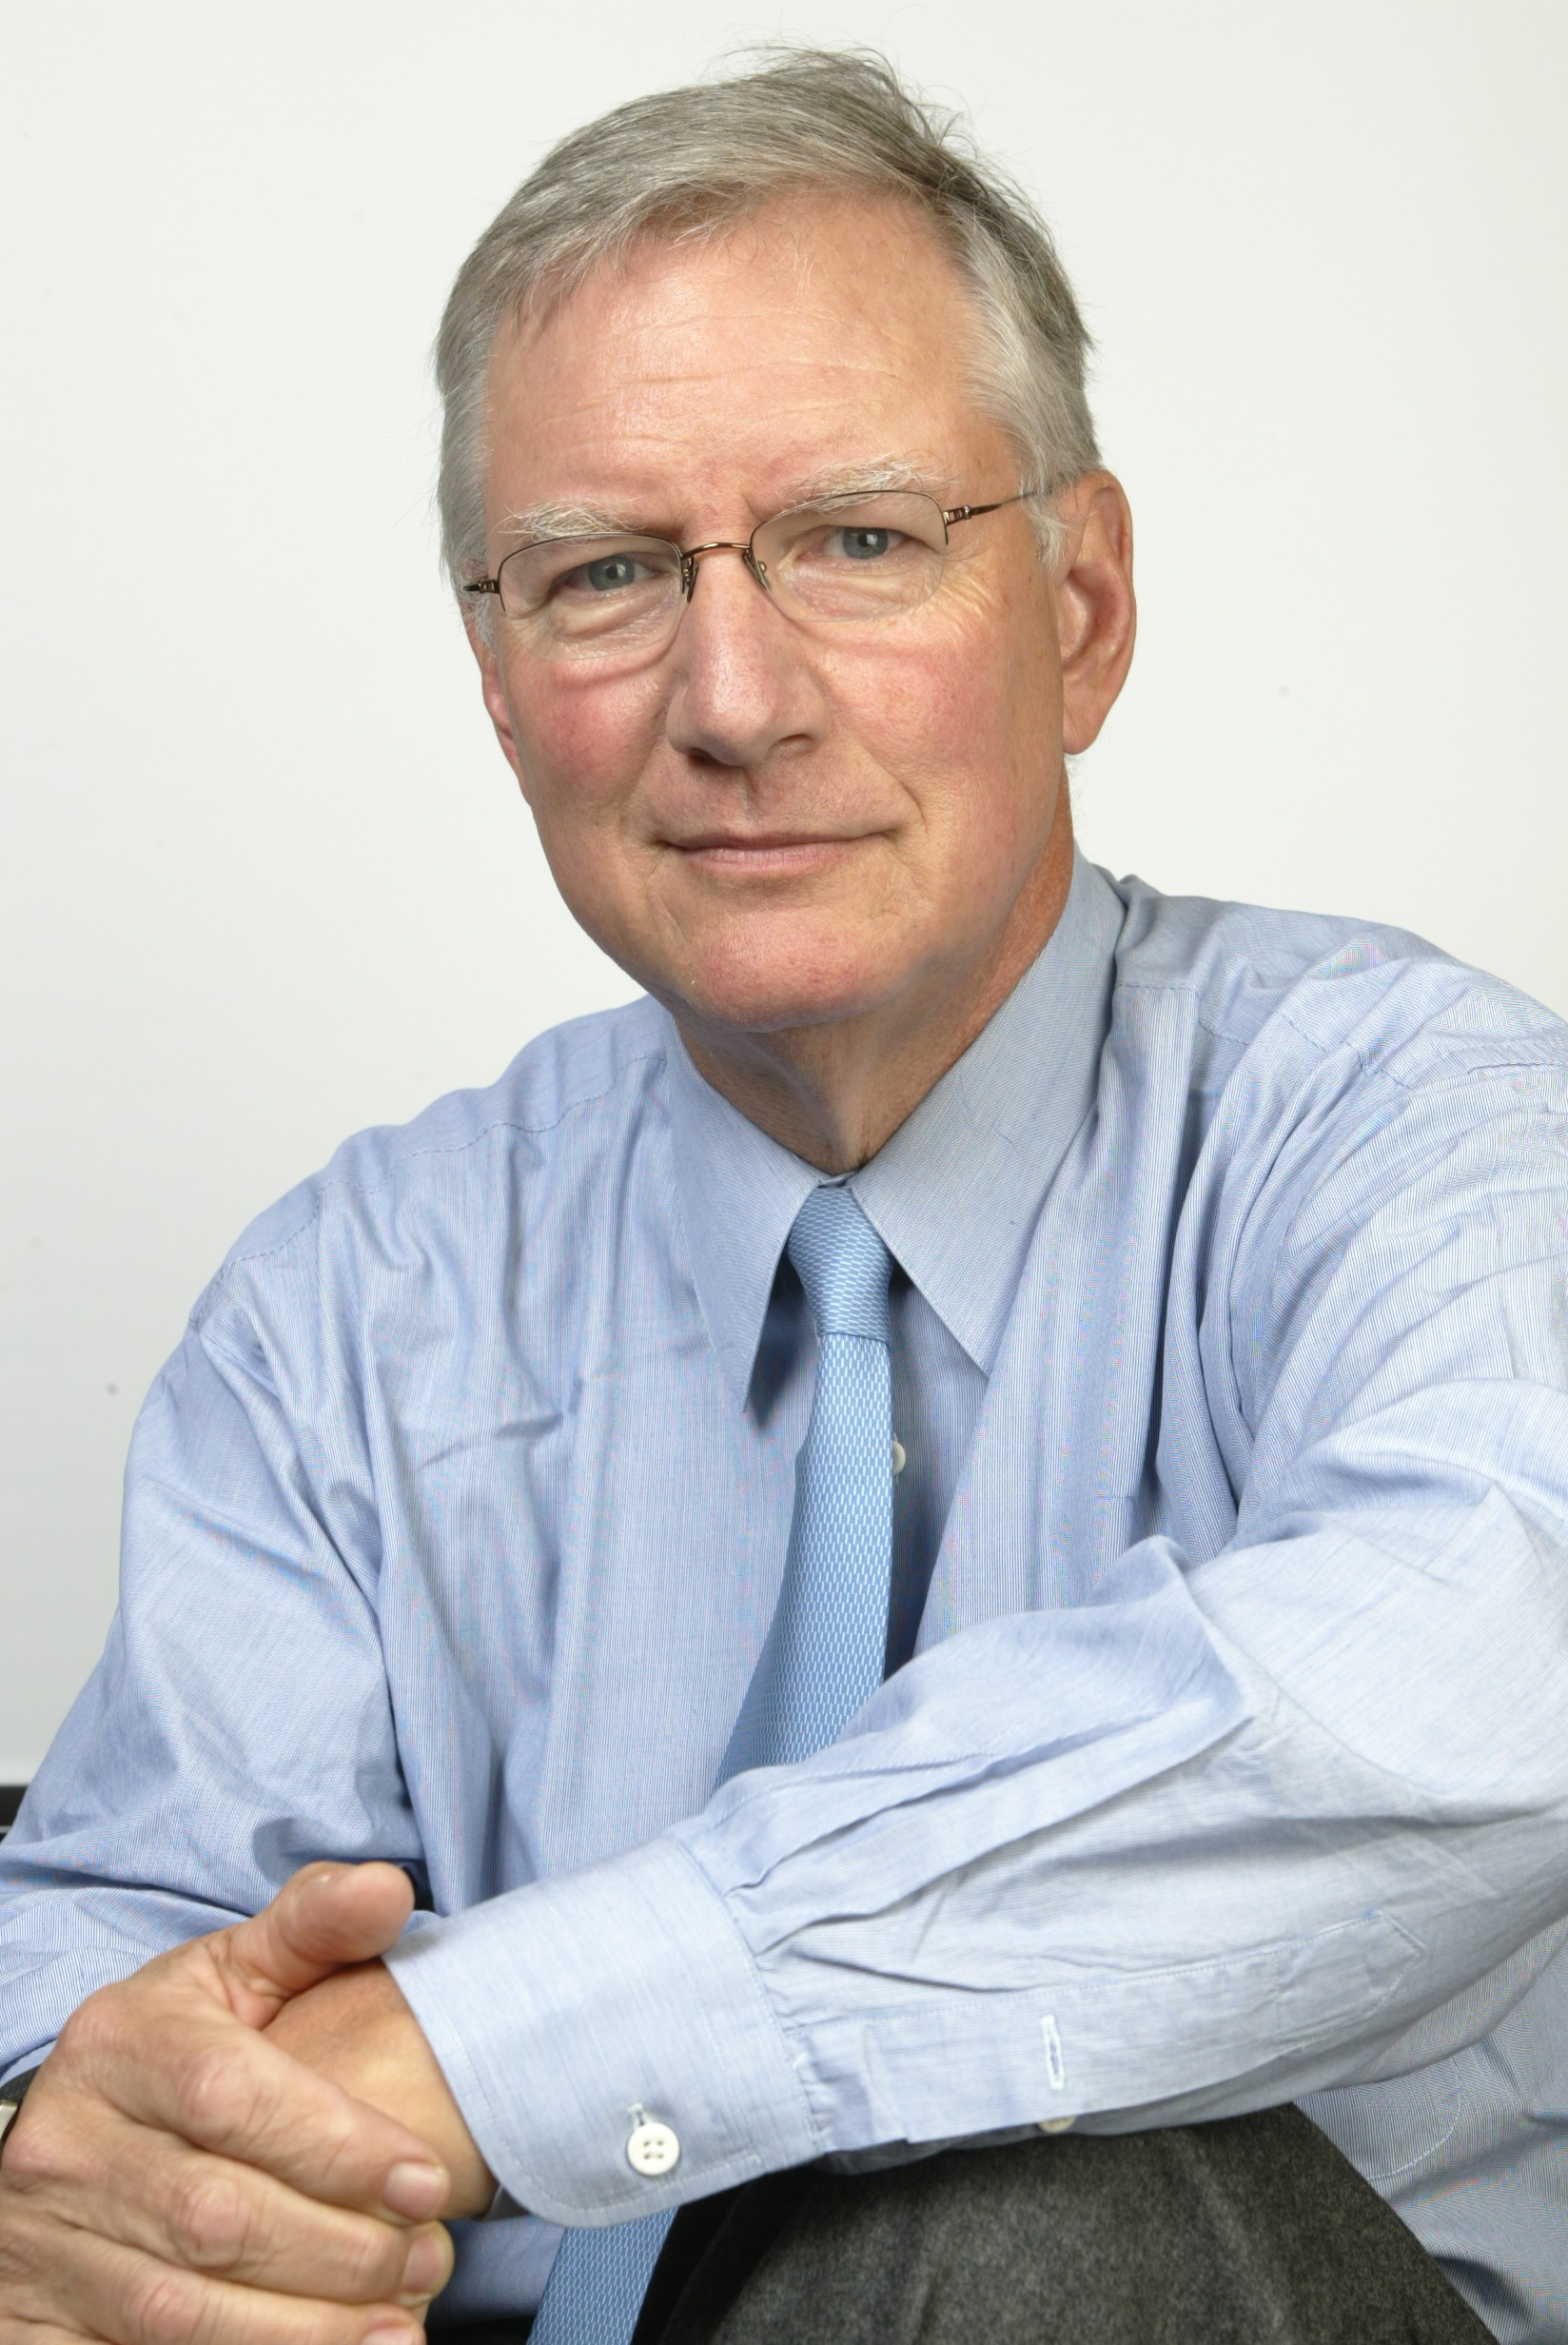 Business adviser and healer, Tom Peters (from his website, photo by Allison Shirreffs)